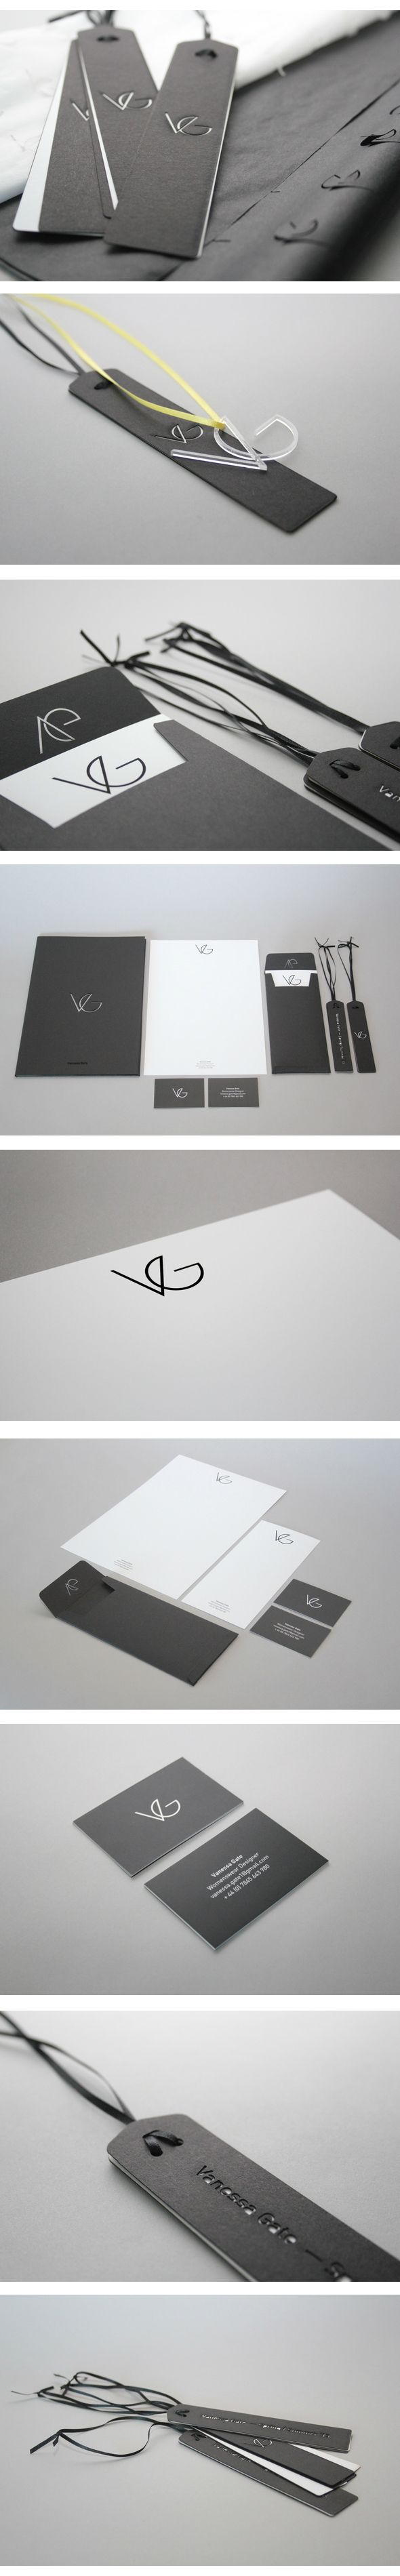 Vanessa Gate. Womenswear Designer Brand Identity by Jonathan Finch via Behance